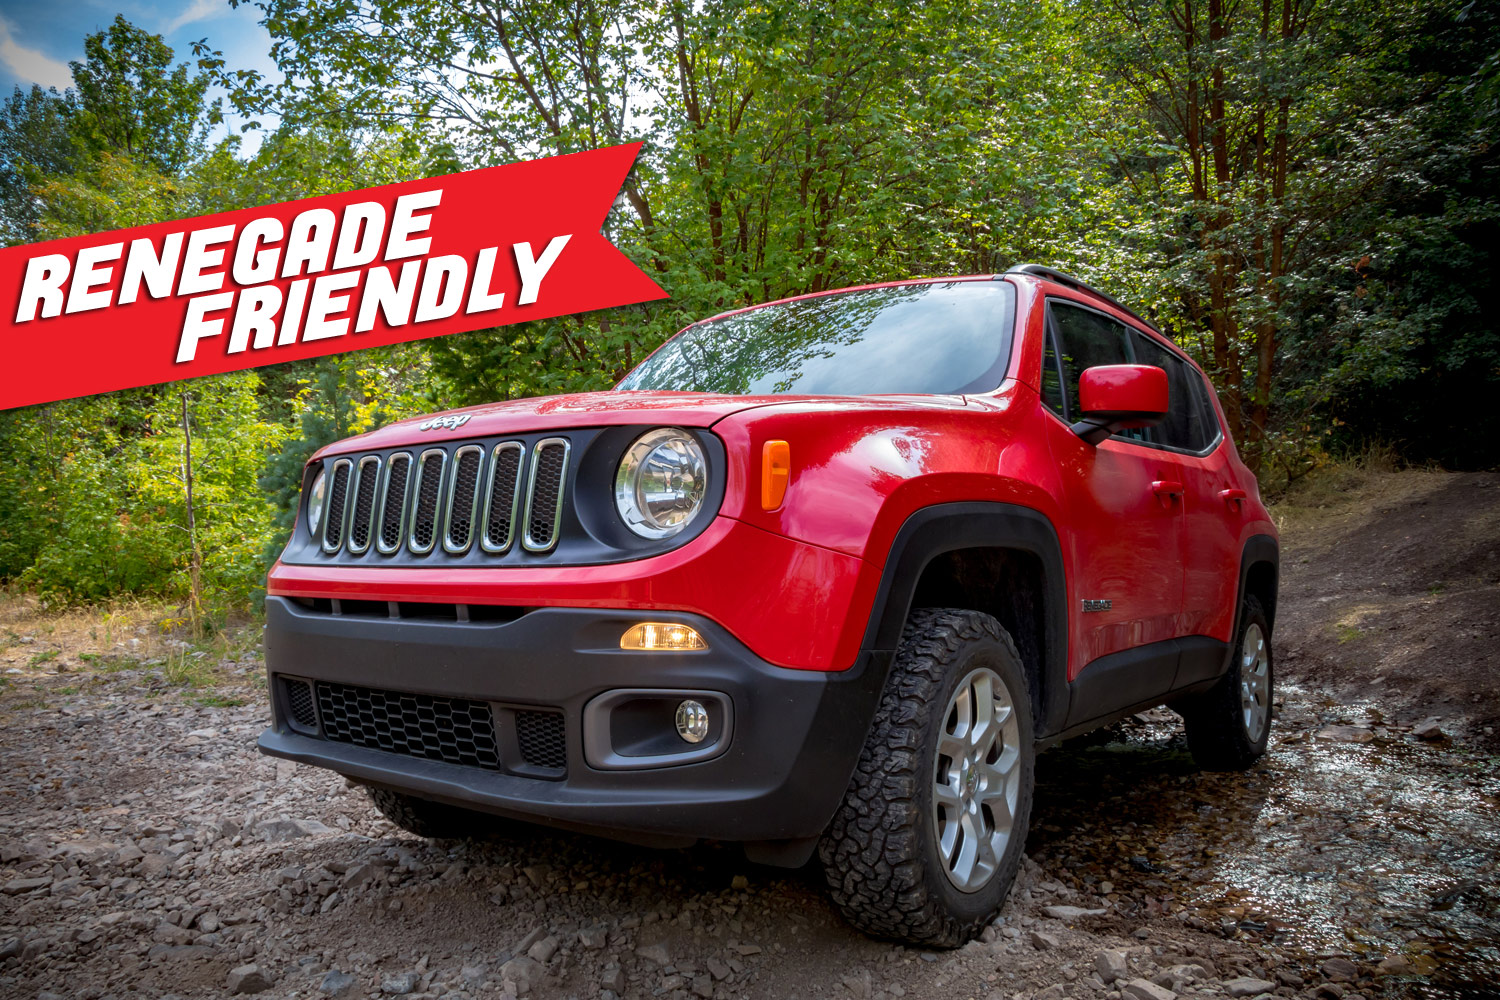 Jeep Renegade friendly